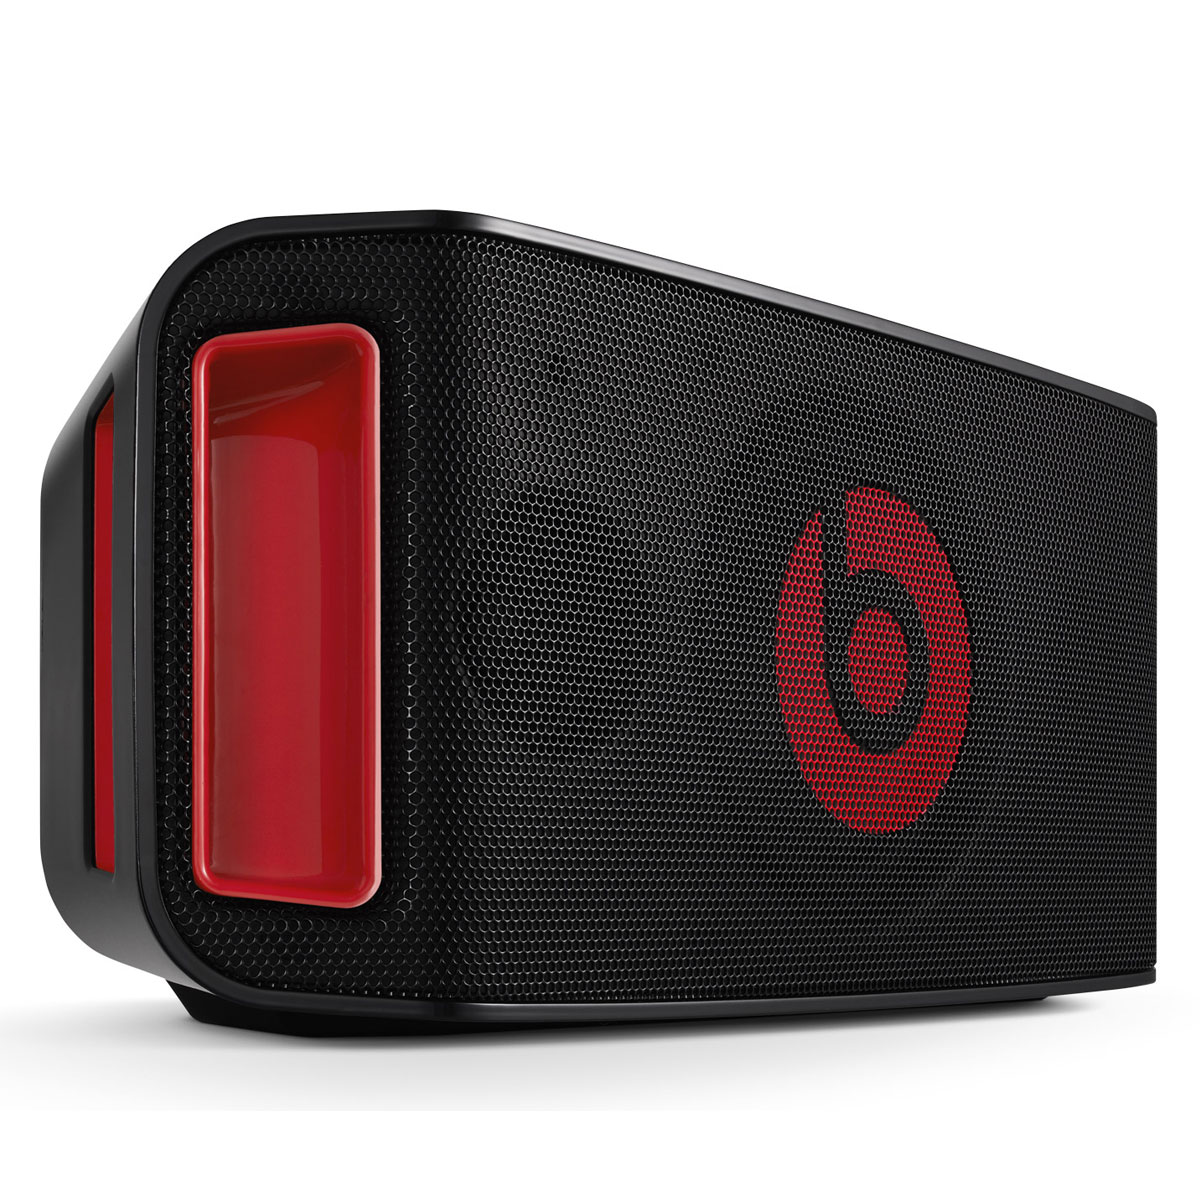 beats by dr dre beatbox portable noir dock enceinte bluetooth beats by dr dre sur ldlc. Black Bedroom Furniture Sets. Home Design Ideas